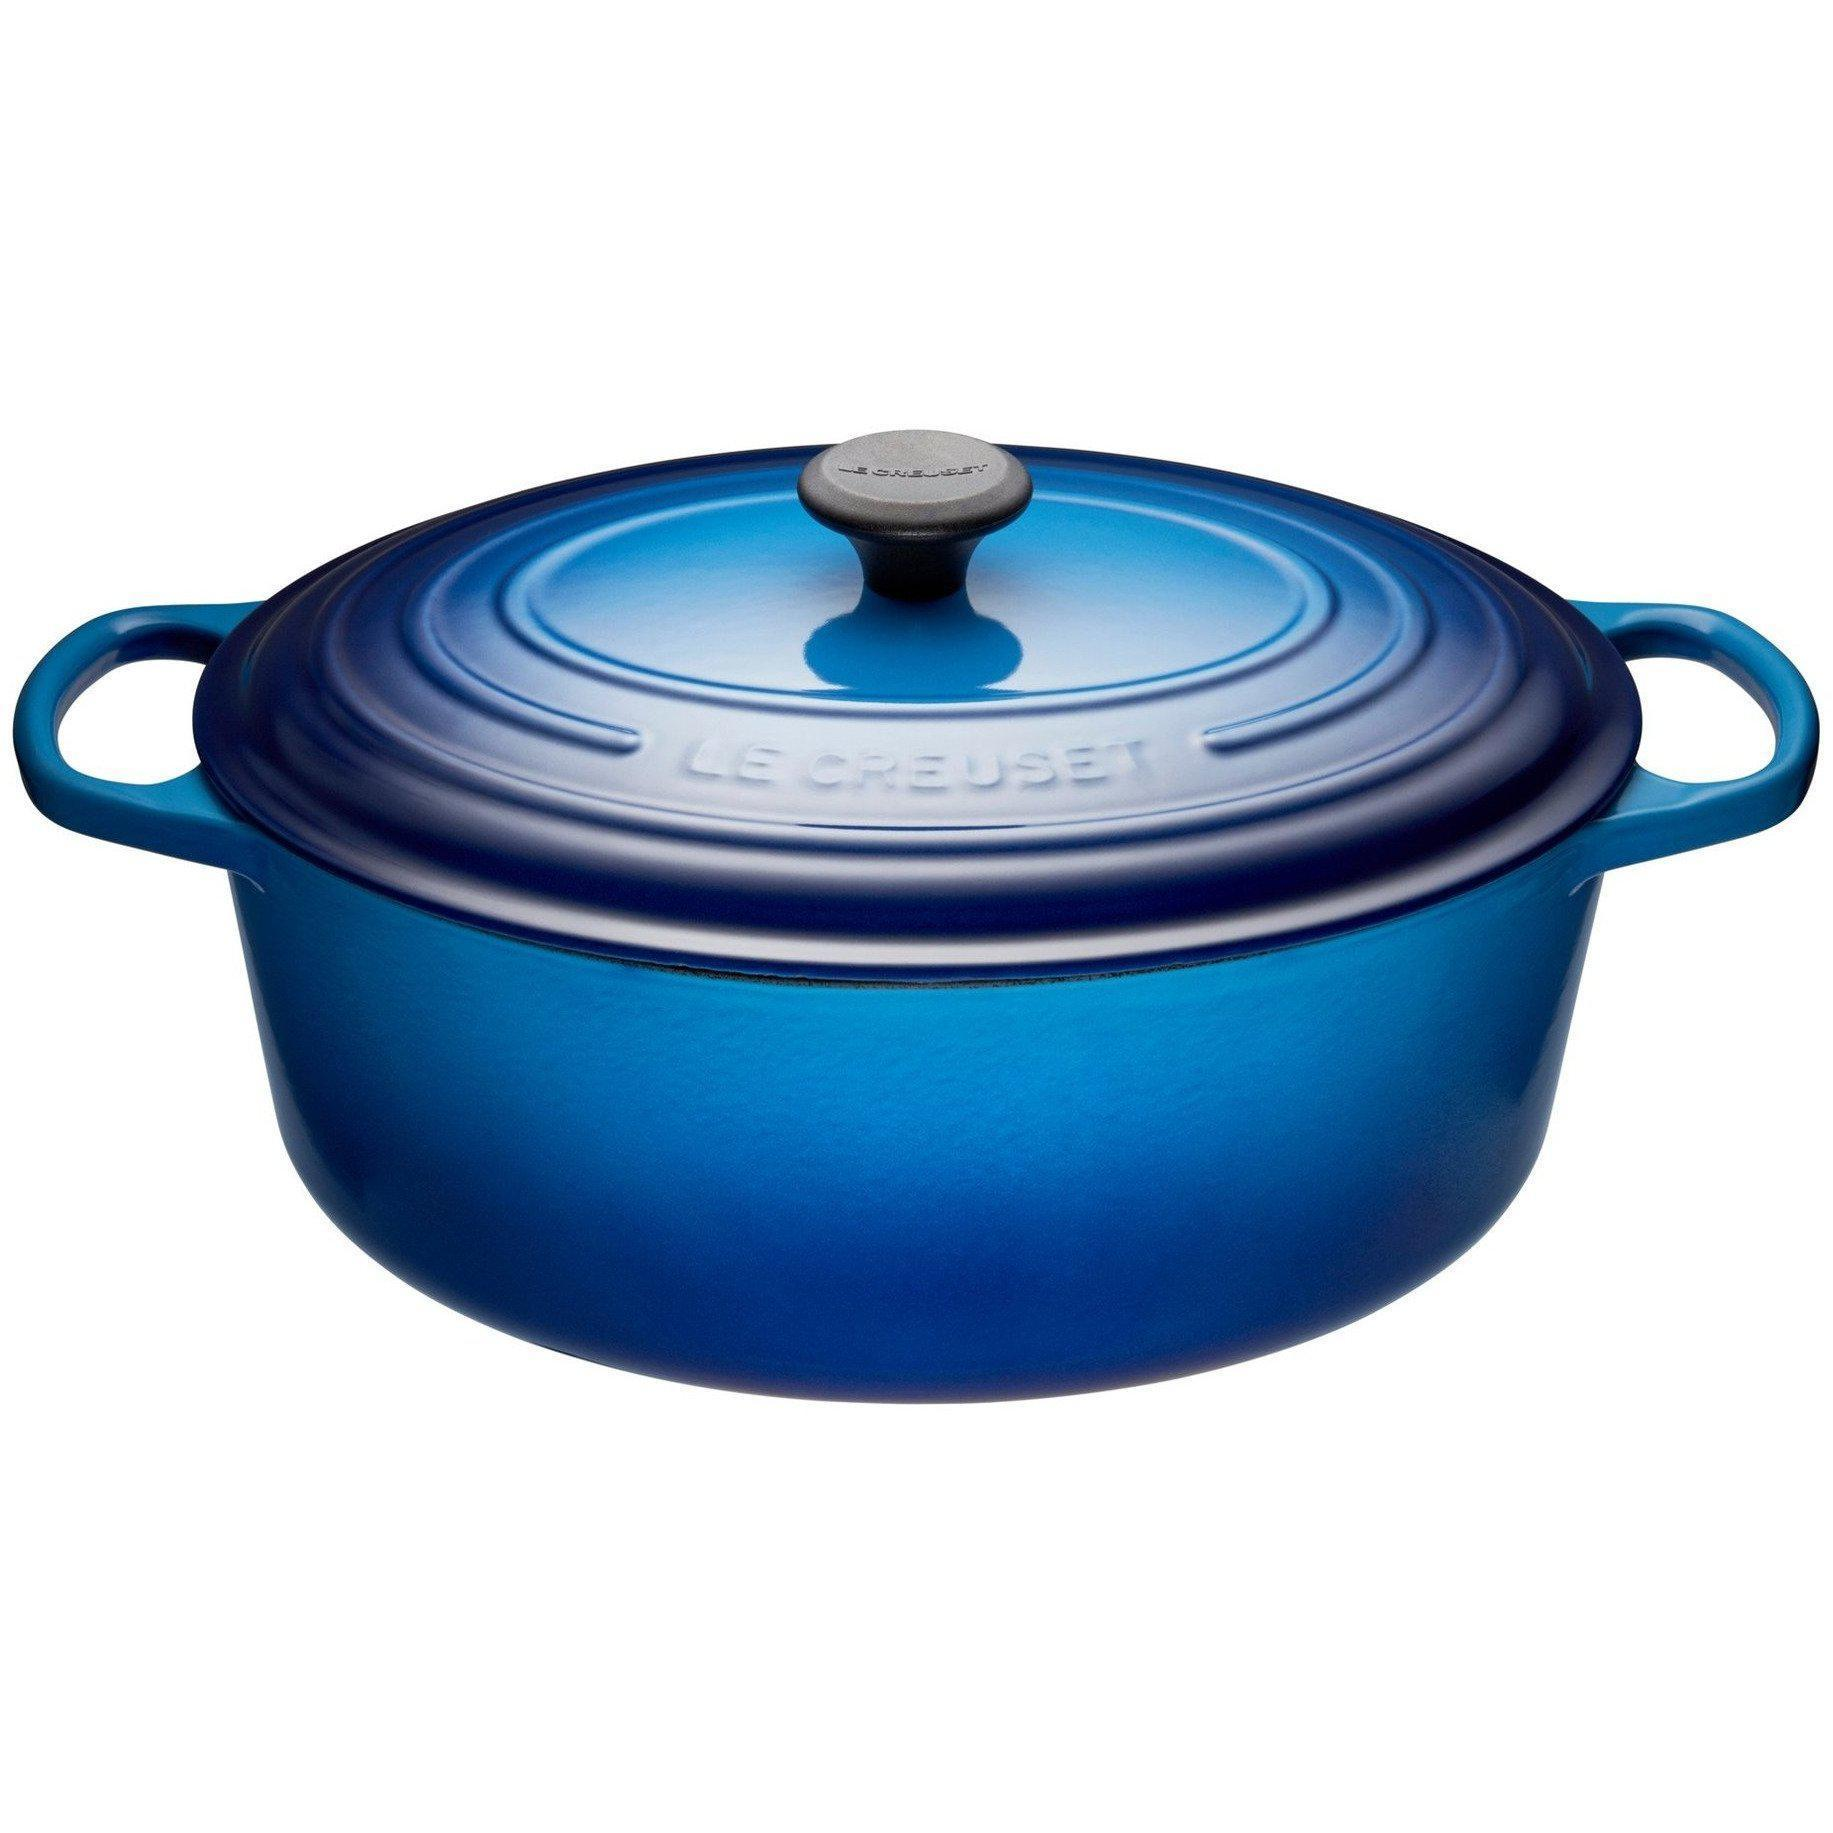 Le Creuset 6.3L Blueberry Oval French/Dutch Oven (31 cm)-Consiglio's Kitchenware